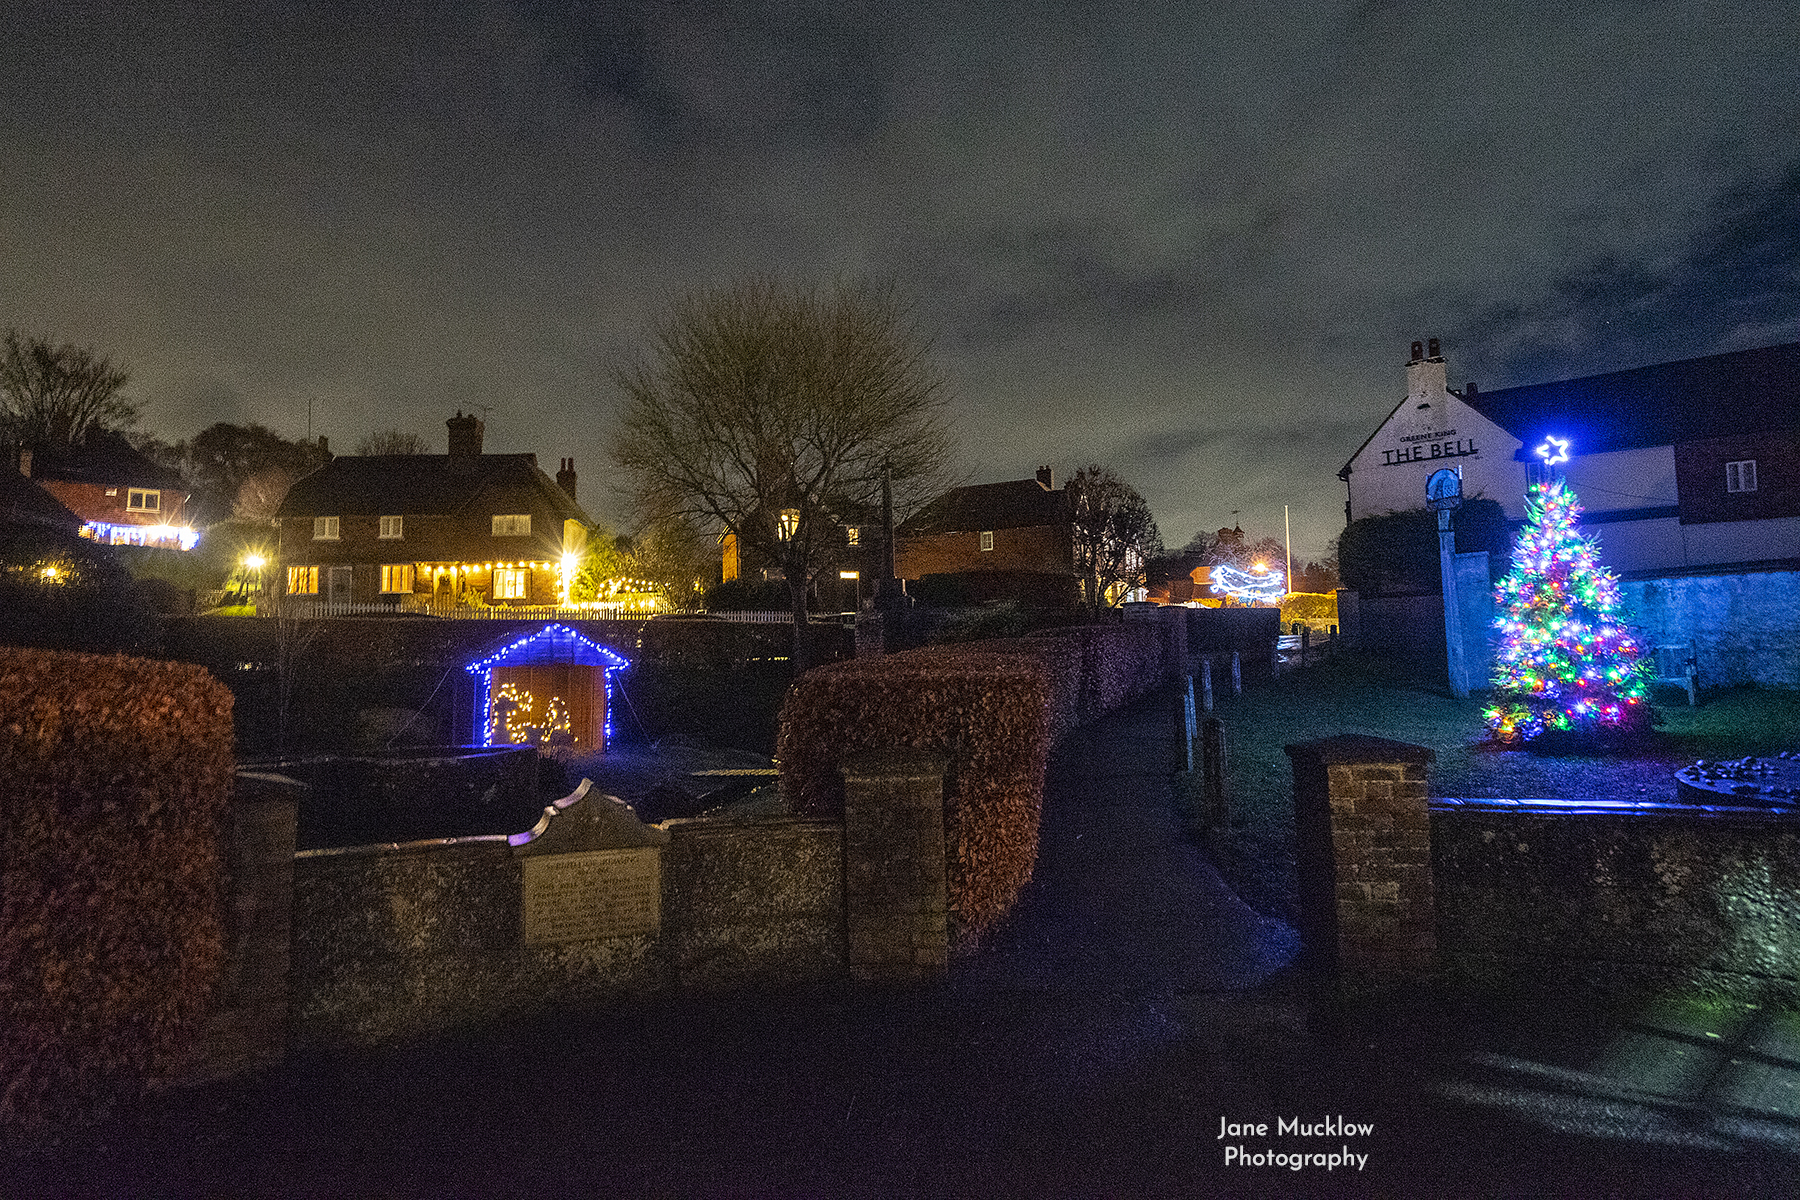 Photo of the Christmas lights and tree in Kemsing, by Jane Mucklow